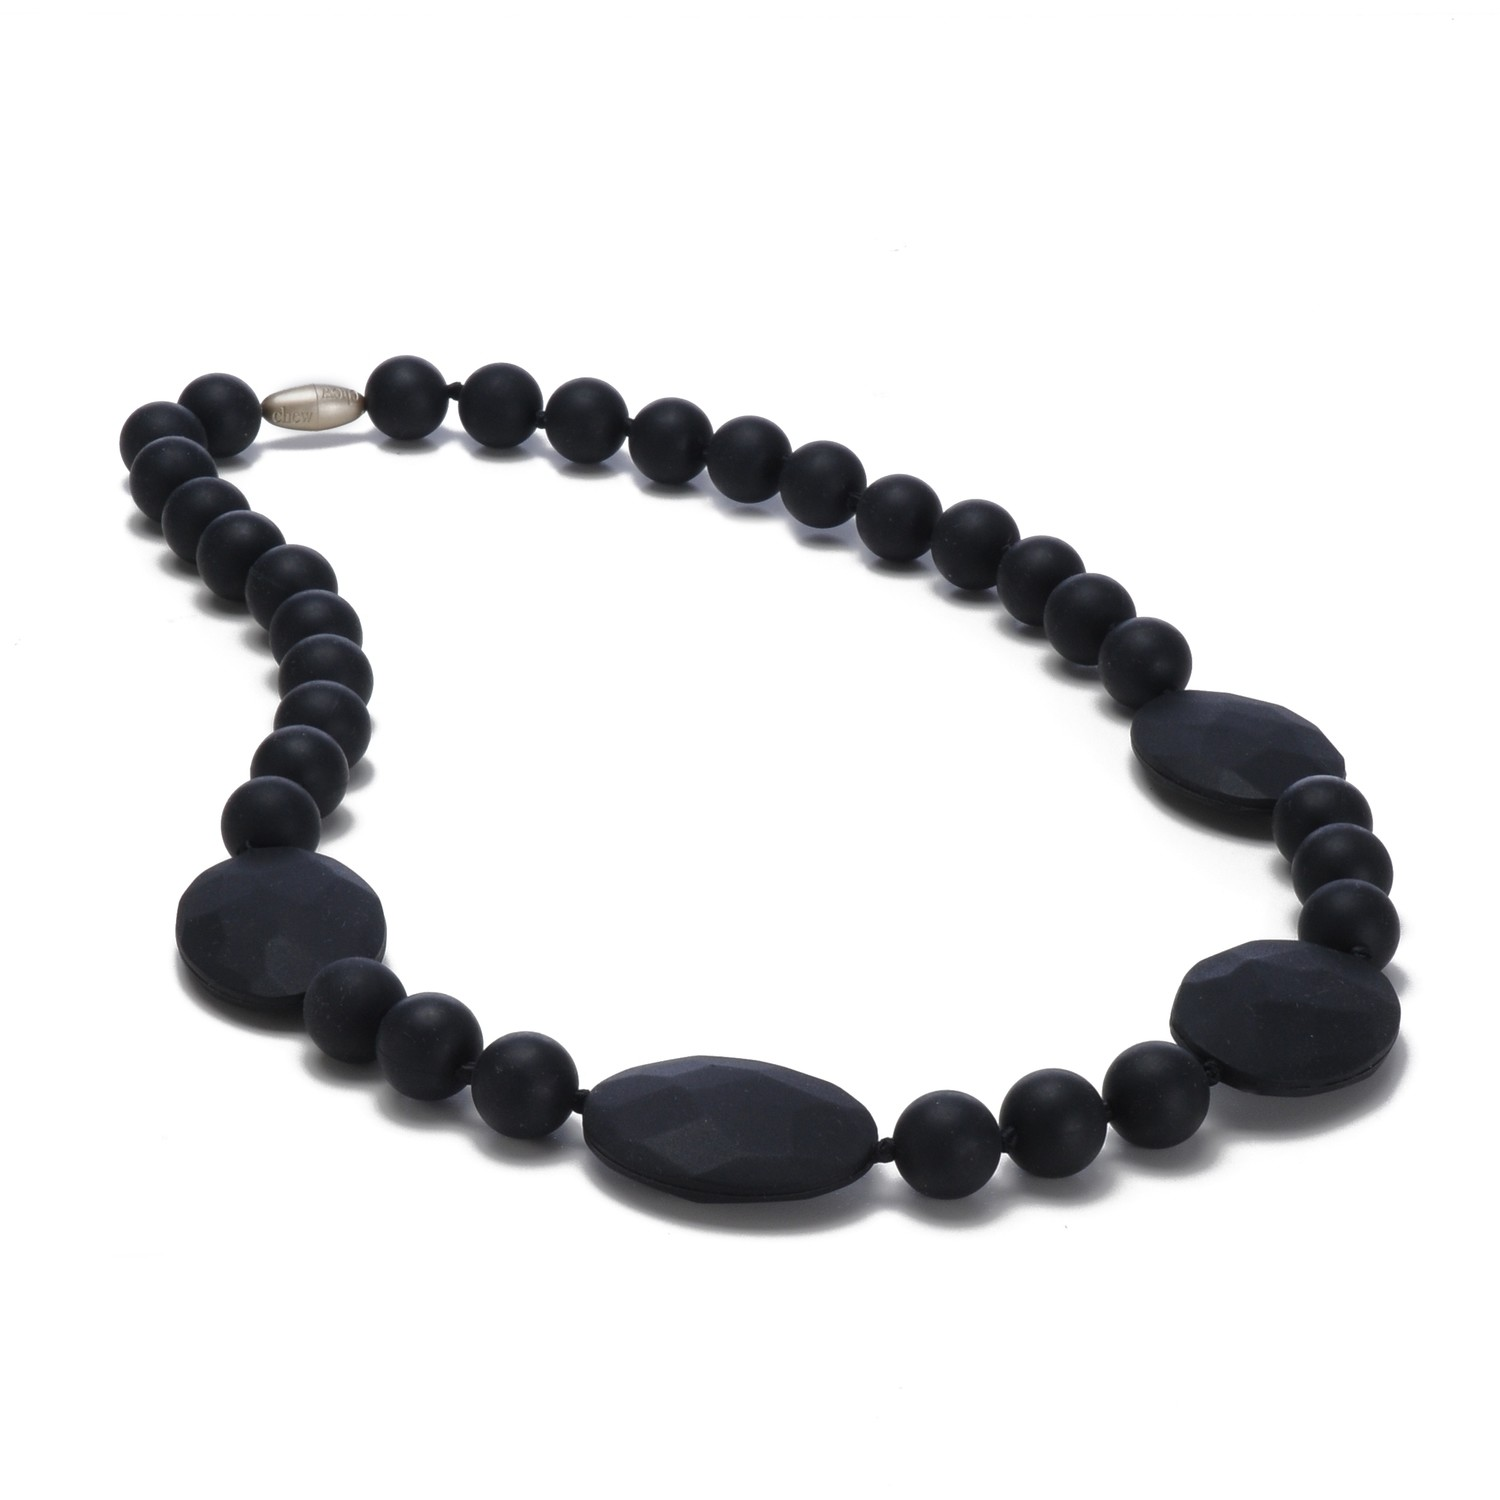 Perry Necklace - Black